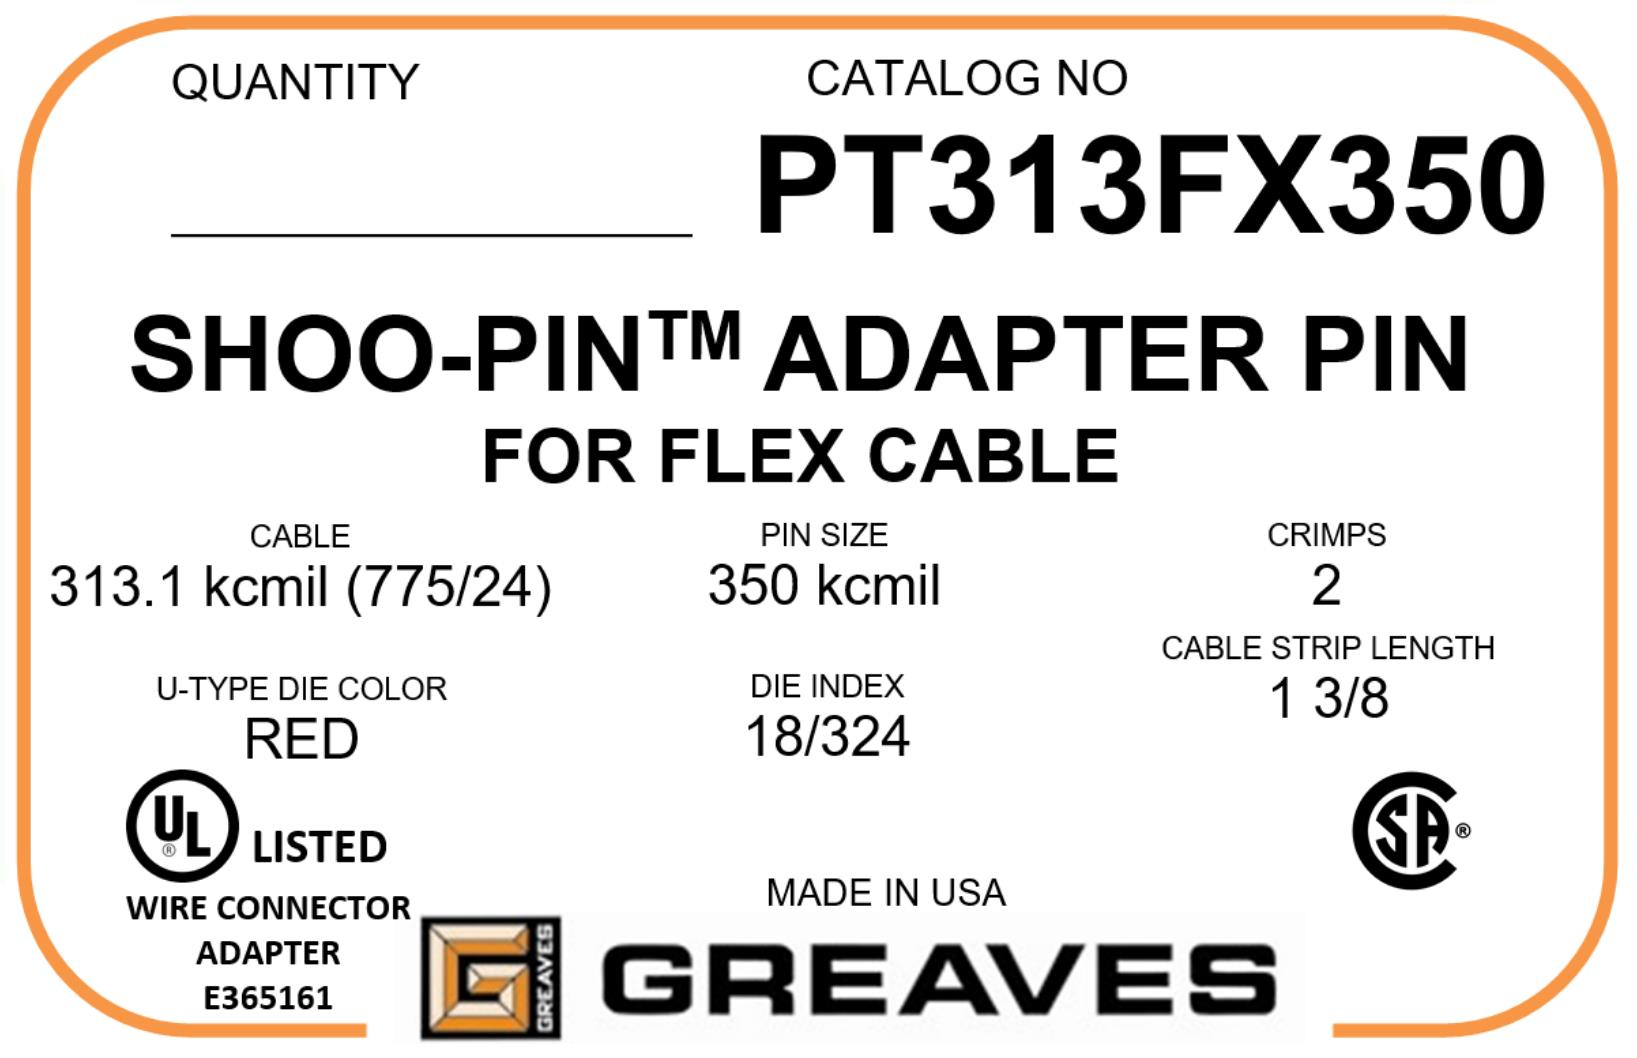 Buy greaves flex cable adapters keyboard keysfo Image collections